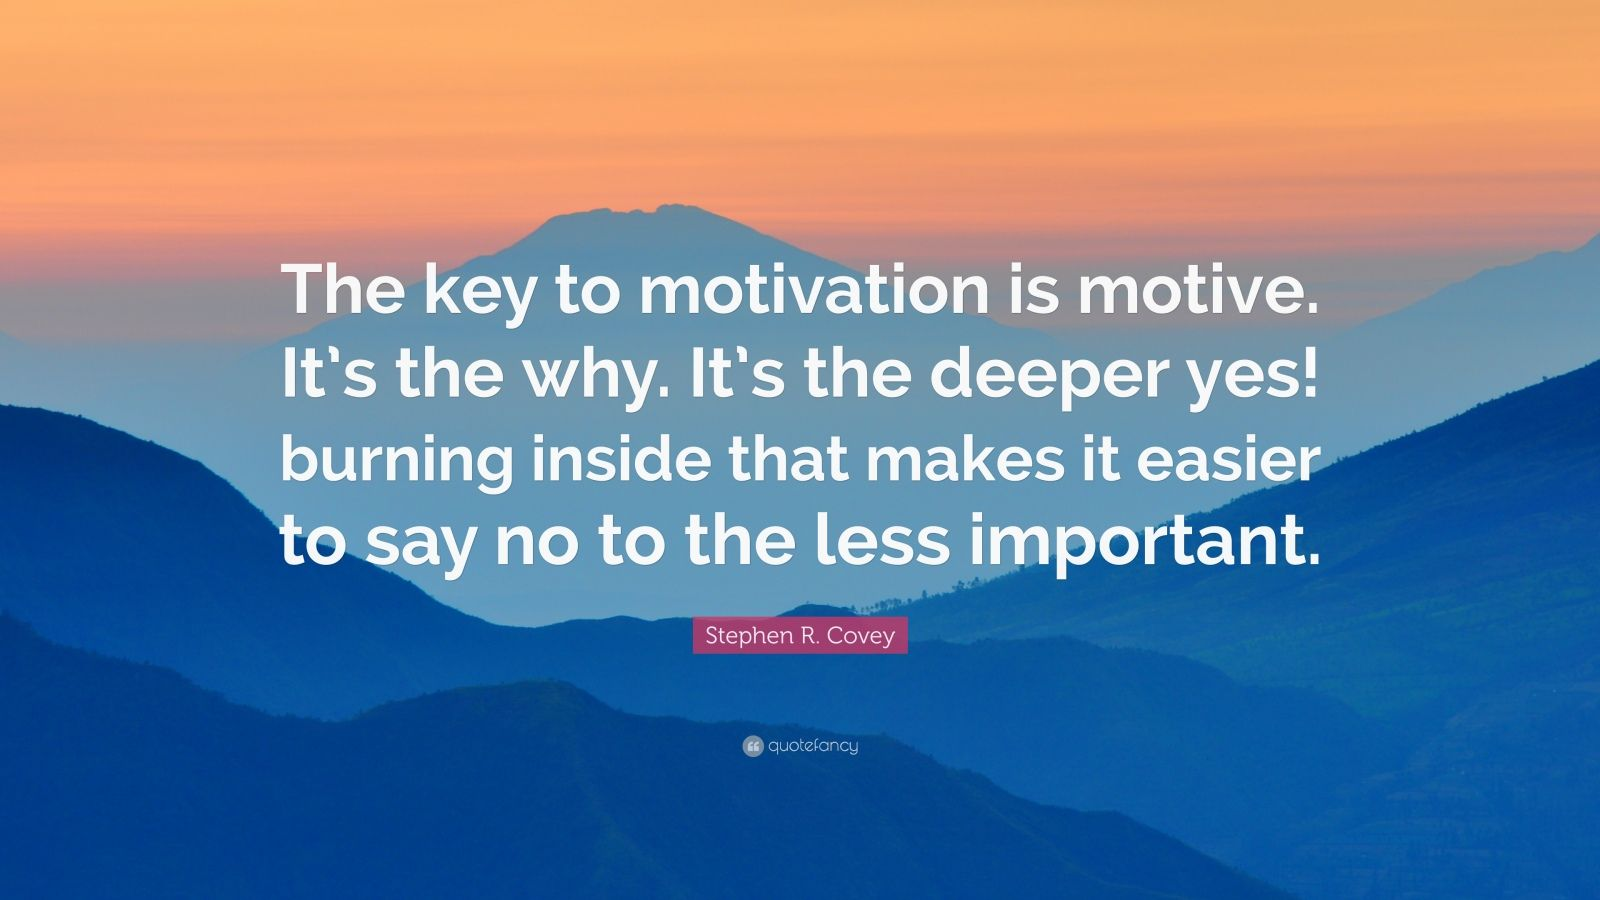 """Stephen R. Covey Quote: """"The key to motivation is motive. It's the why. It's the deeper yes! burning inside that makes it easier to say no to the less important."""""""